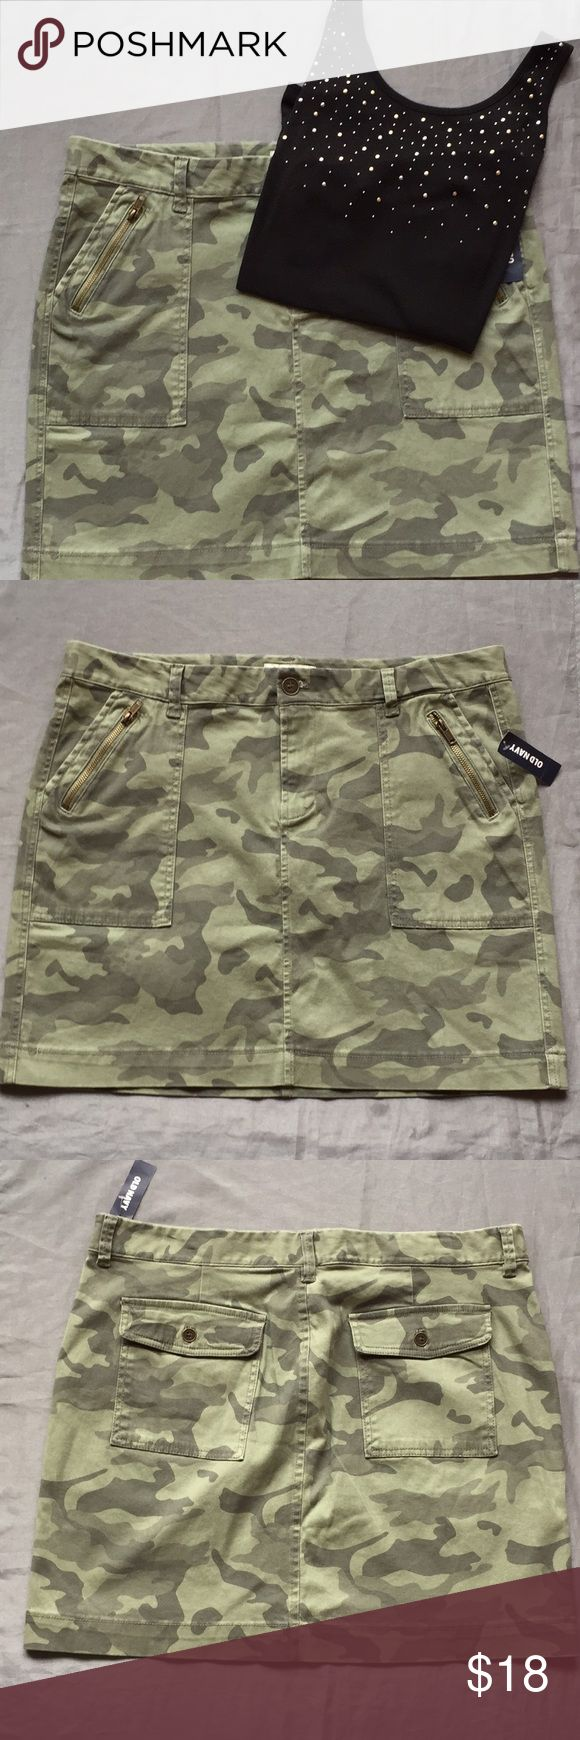 "Old Navy Camo-Print Skirt Ready to combat the summer? This adorable skirt has 2 useable pockets in the front and back.   Length is about 19""inches long Offers welcomed Old Navy Skirts Midi"